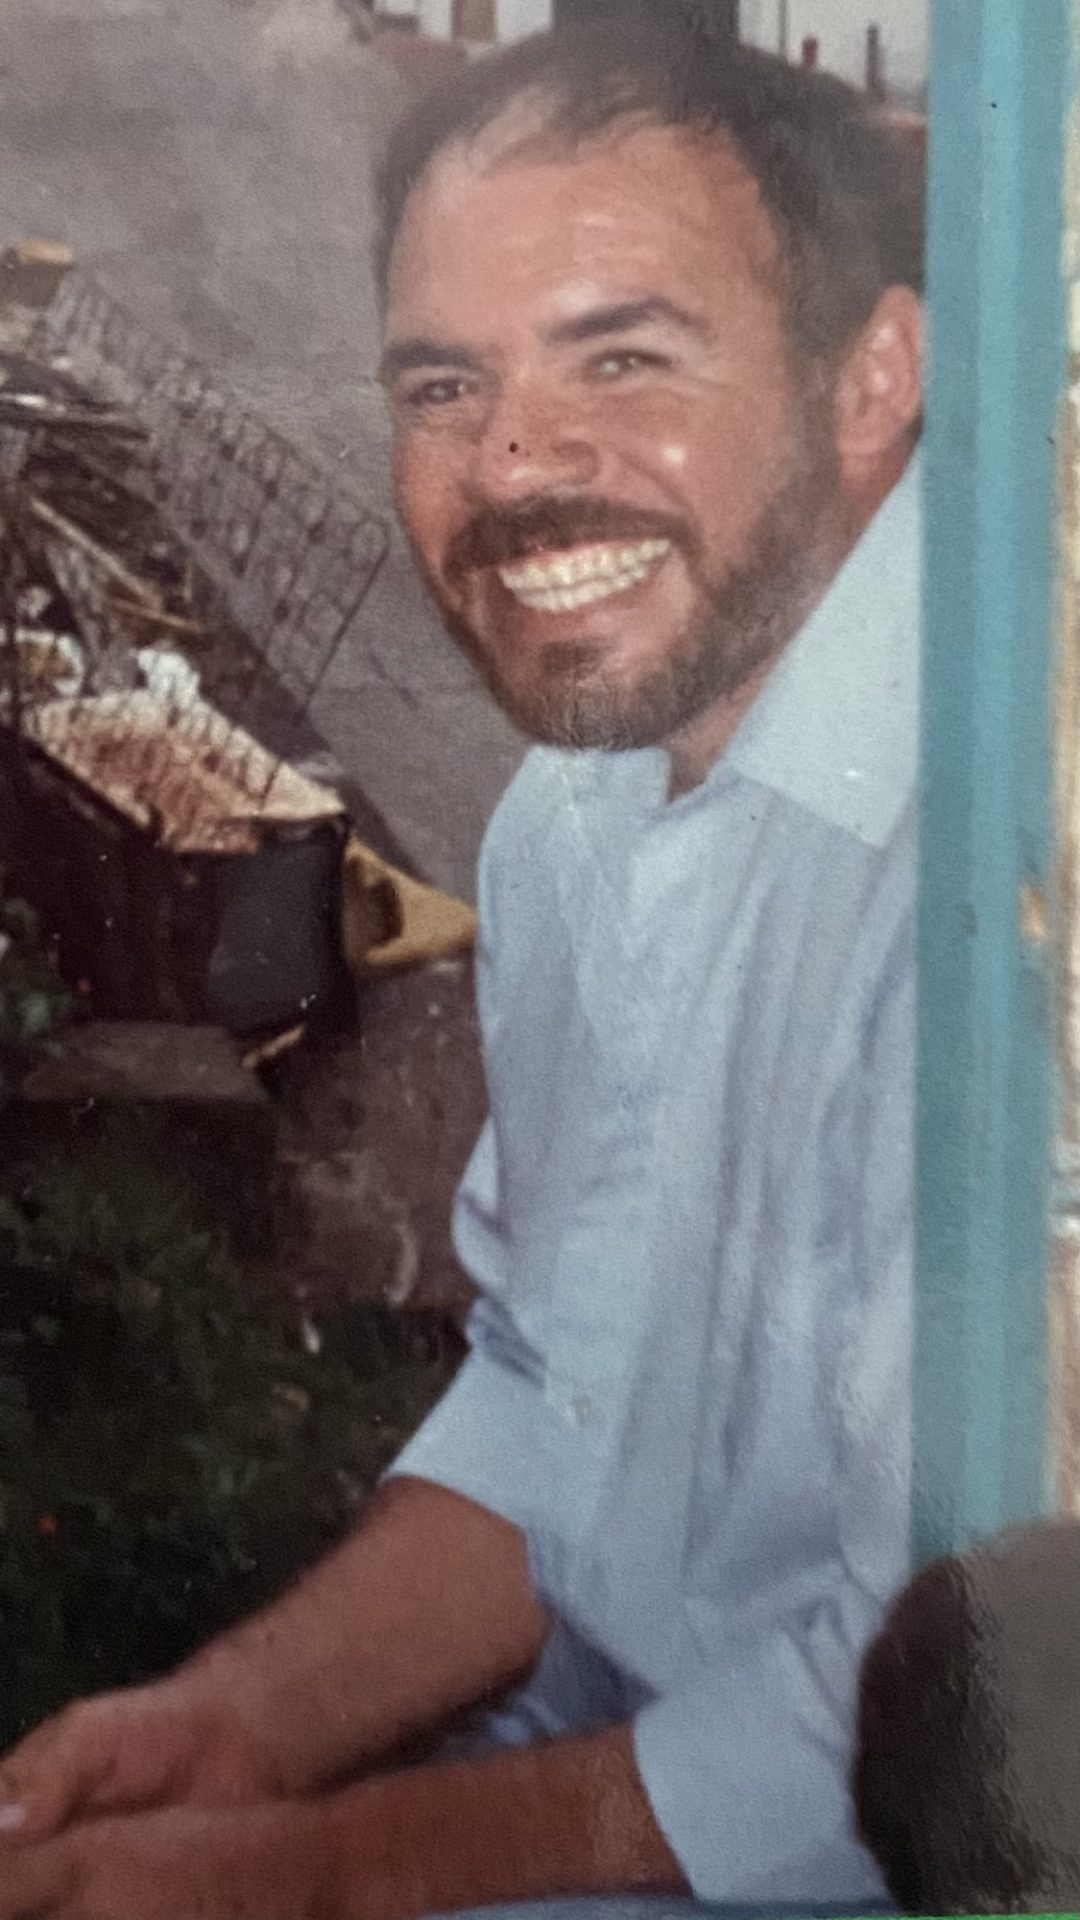 My daddy I love his smile. I will love and miss you daddy for eternity may you Rest In Peace Te Amo Por Siempre your little girl.